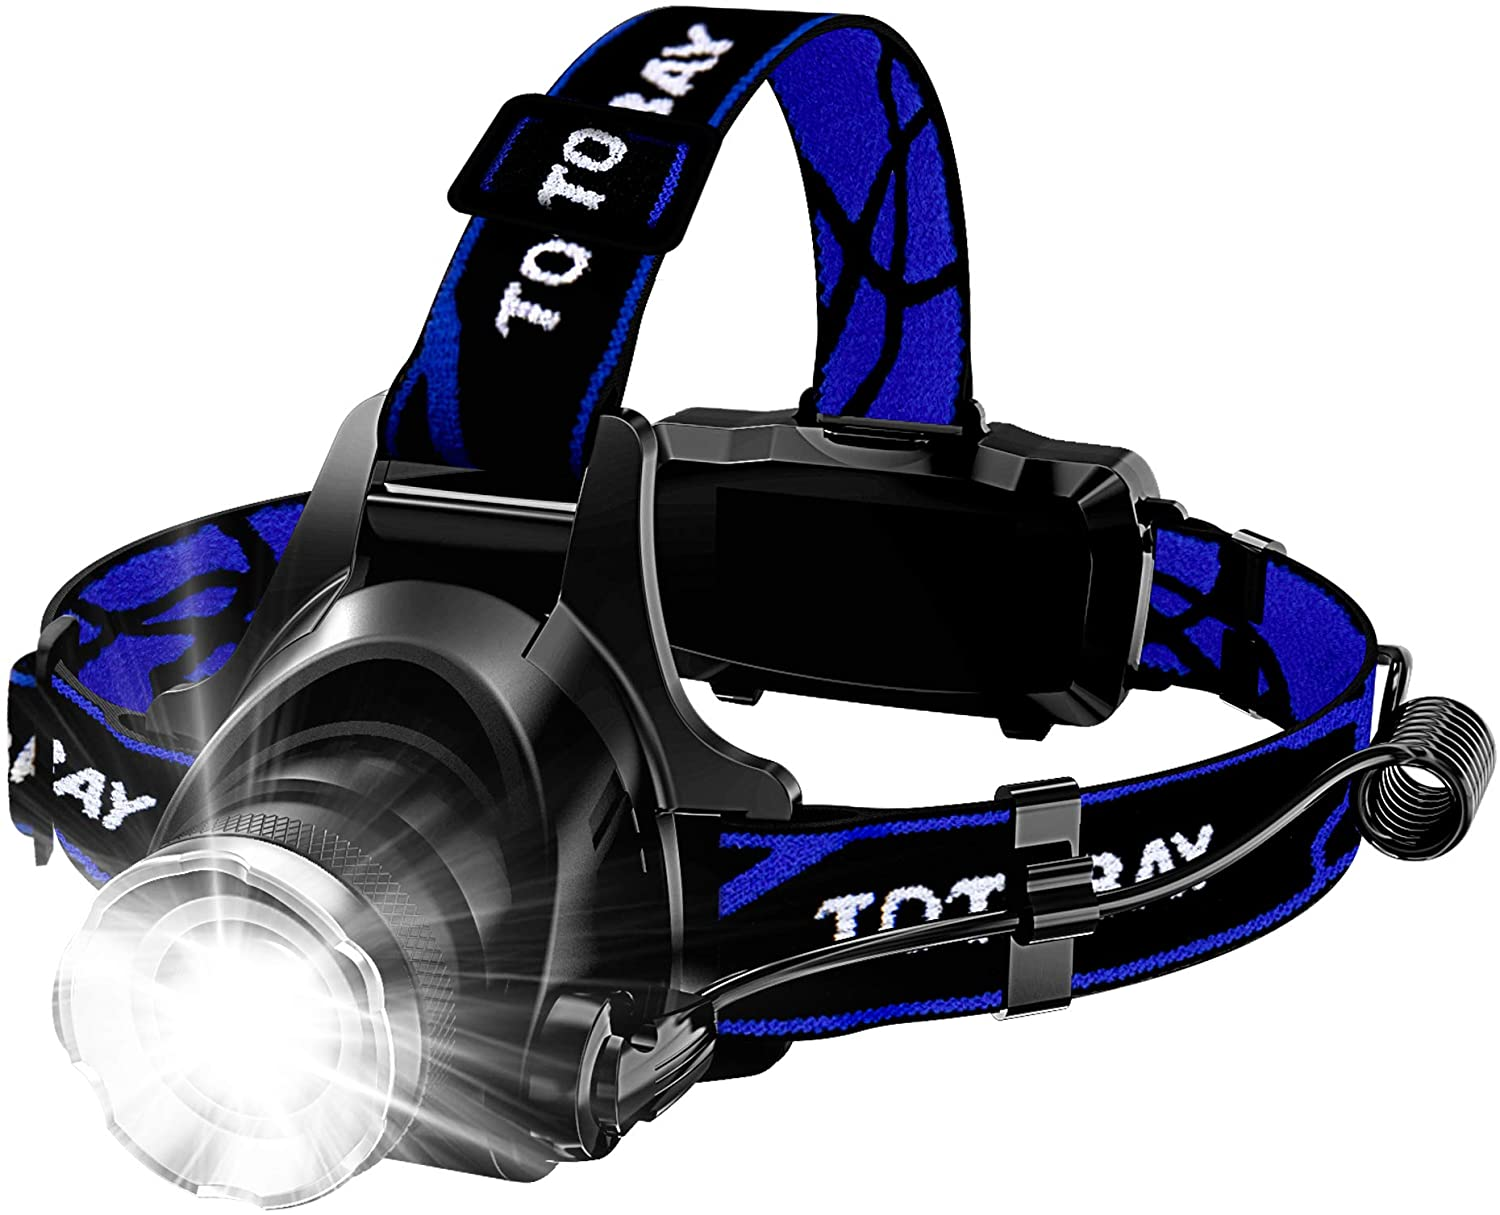 Totobay--Zoomable 3 Modes Super Bright LED Headlamp